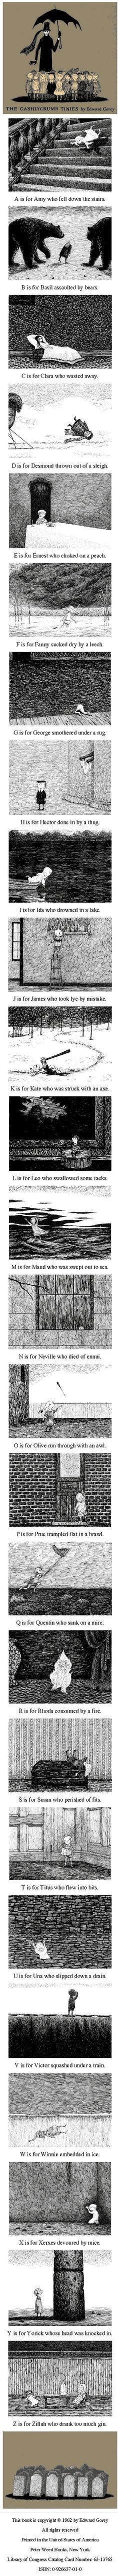 //The Gashlycrumb Tinies by Edward Gorey #illustration